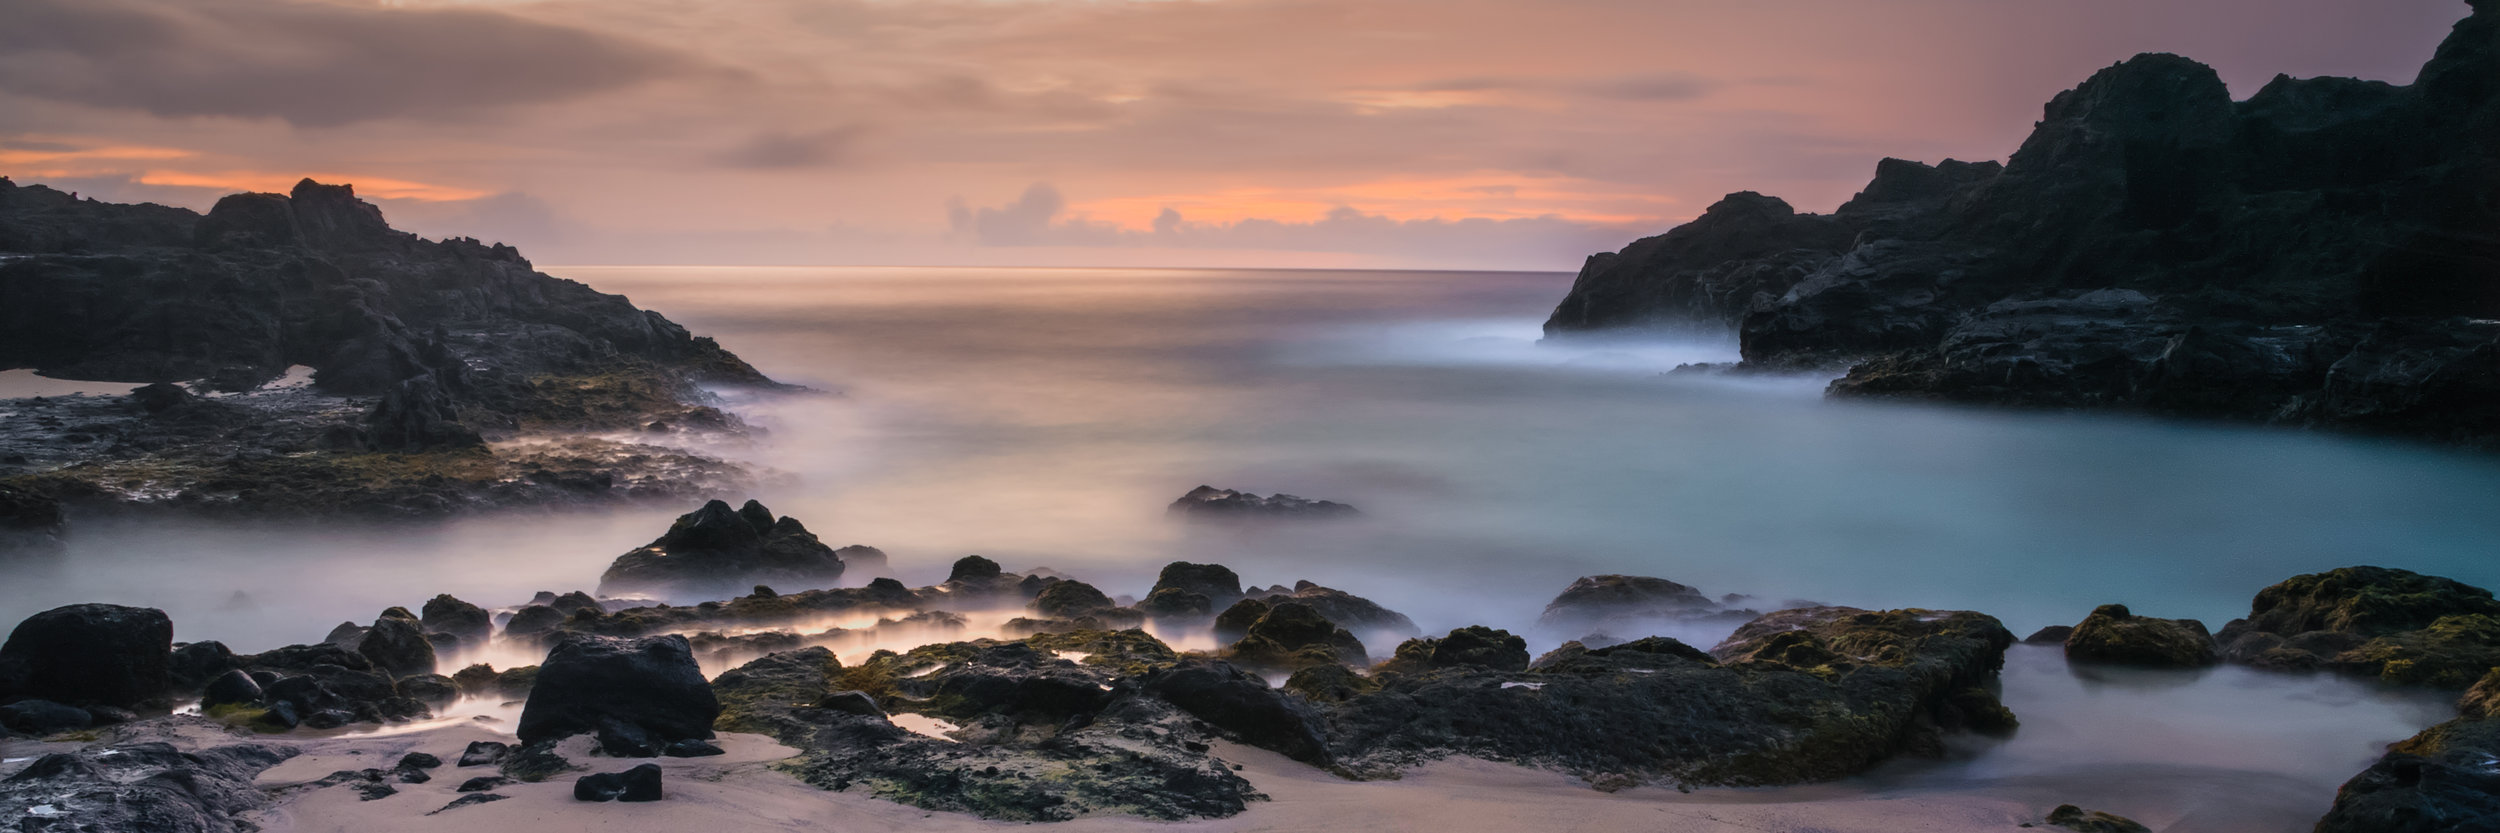 Eternity Beach is a fine art photograph of Halona Beach Cove on the island of Oahu, Hawaii by Jason Matias. It is a panoramic, long exposure with oranges, salmons, pinks, blues and lava rock.